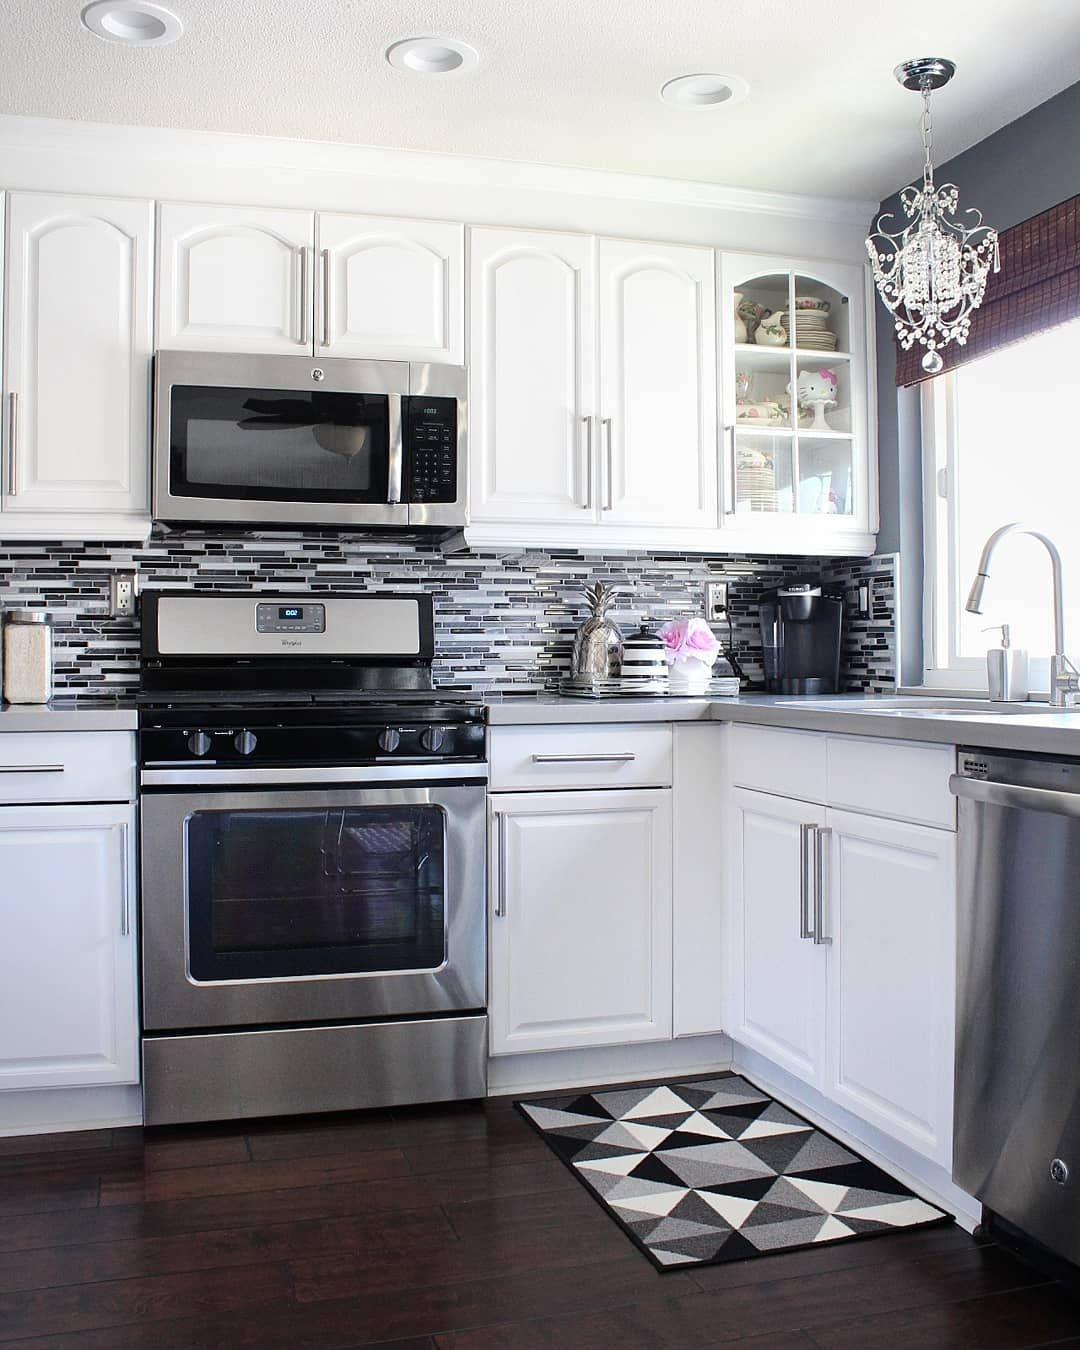 The Easiest Way To Renovate Your Kitchen: Waking Up To A Clean Kitchen Is The Best Way To Start The